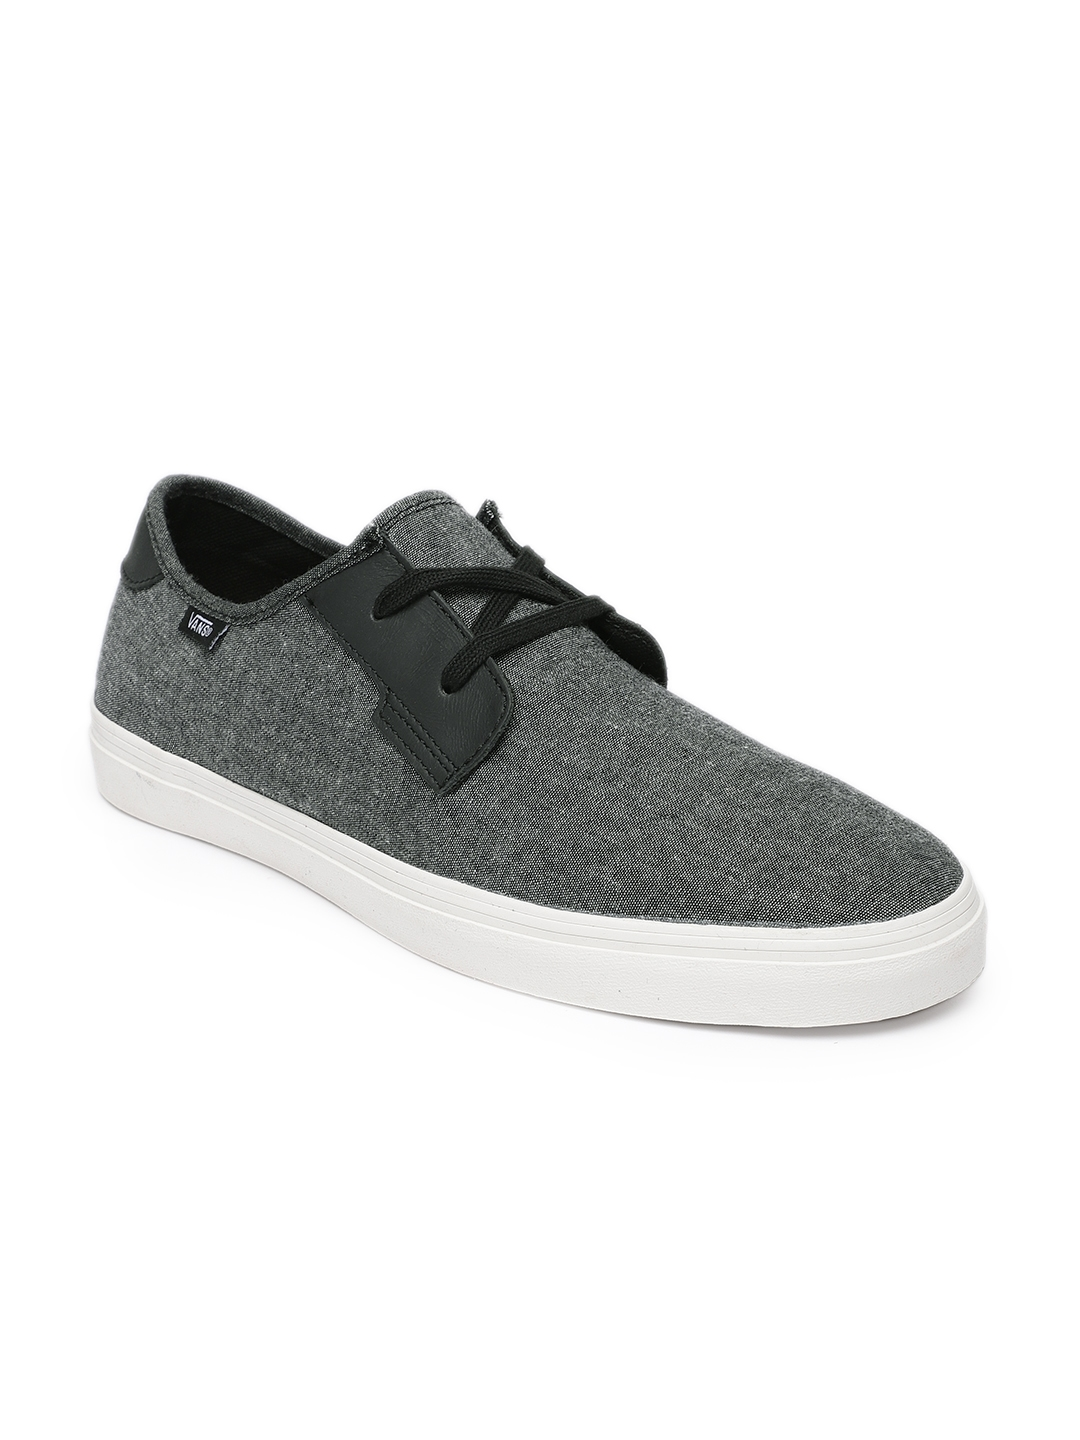 37c2ea125d Buy Vans Unisex Grey Michoacan SF Sneakers - Casual Shoes for Unisex ...